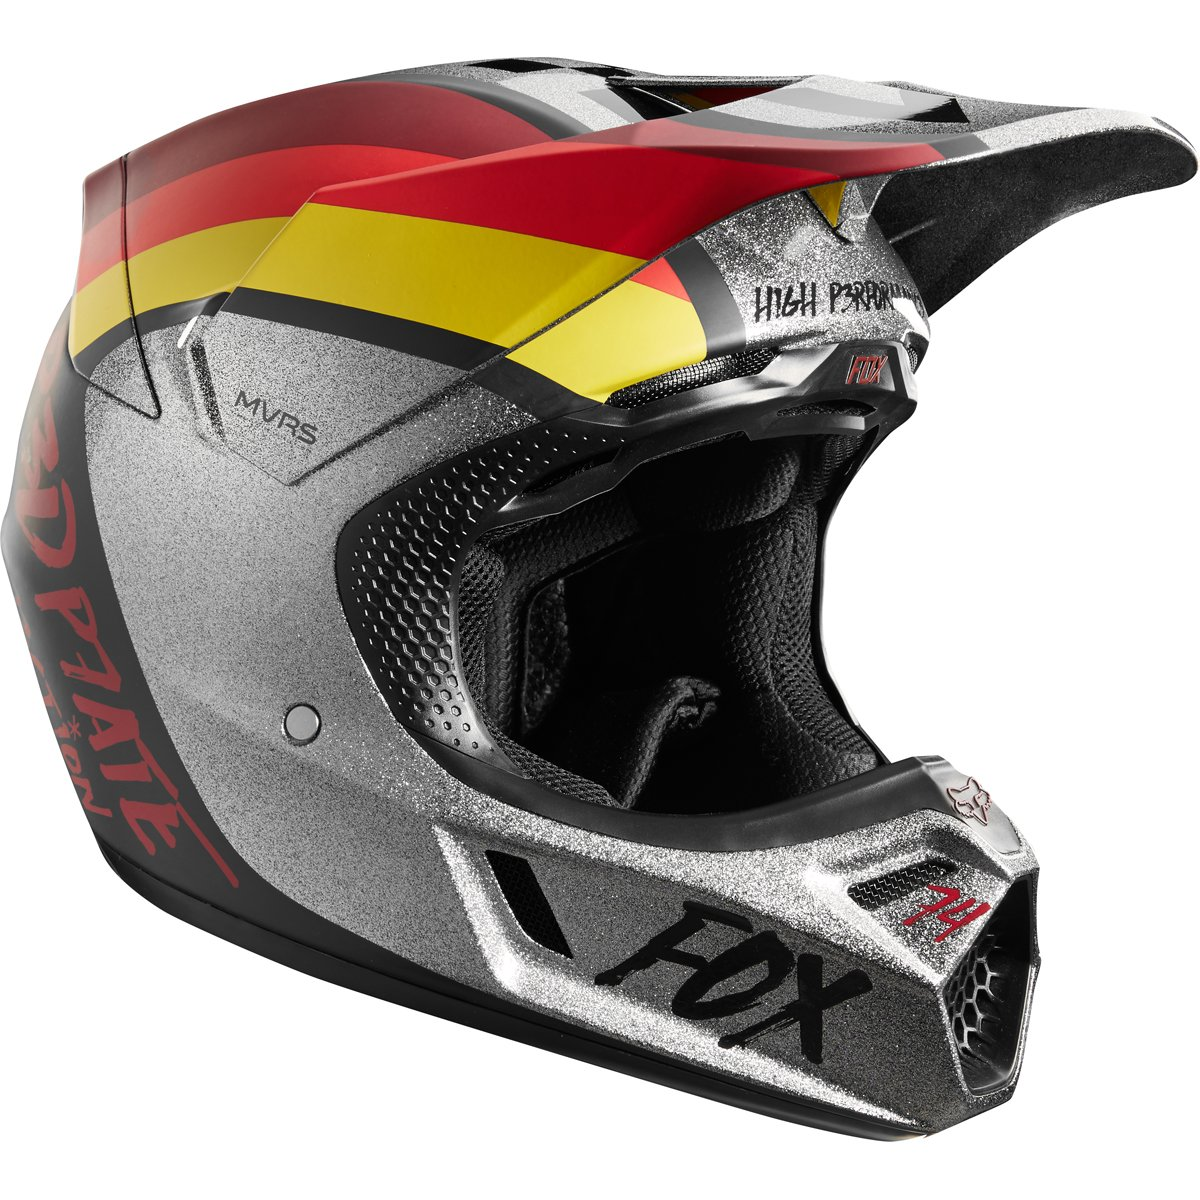 Fox Racing 2018 V3 RODKA Limited Edition Offroad Motocross Helmet Light Gray-Medium by Fox Racing